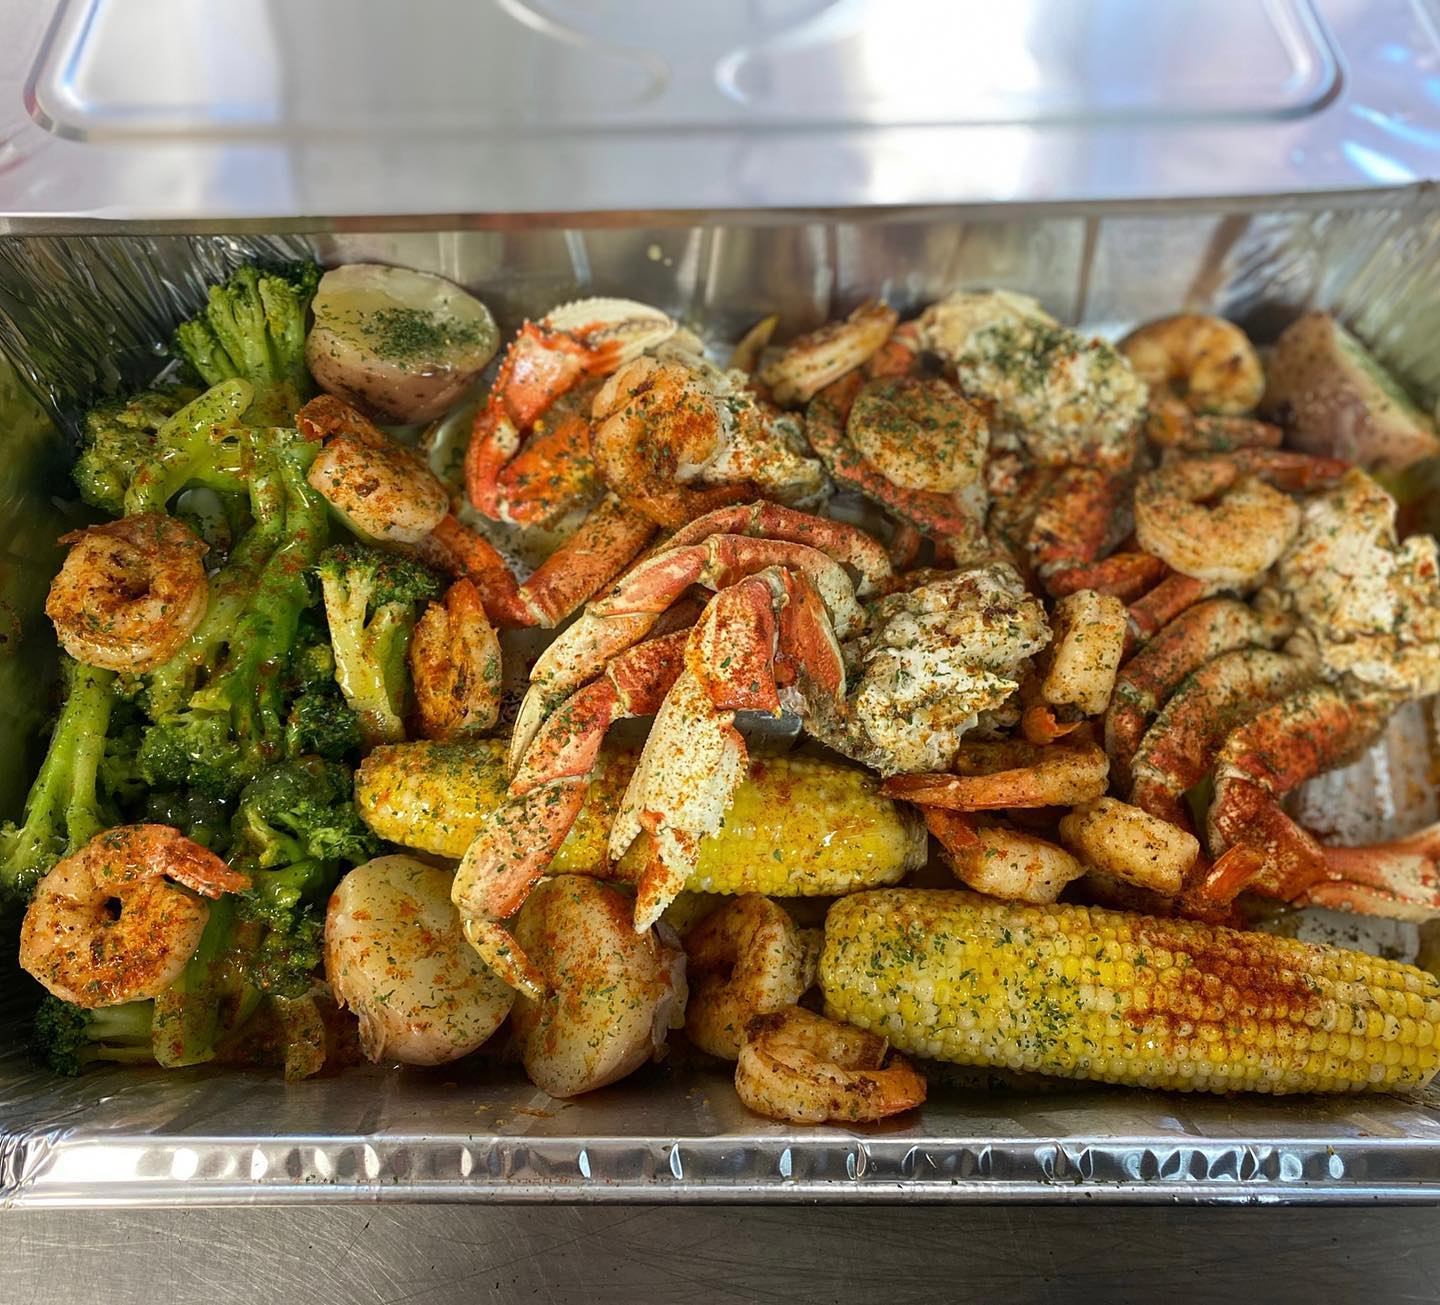 UPTOWN OCEAN PRIME Platter: Two Dungeness Clusters, Five Colossal Shrimp, Corn on The Cob and Broccoli